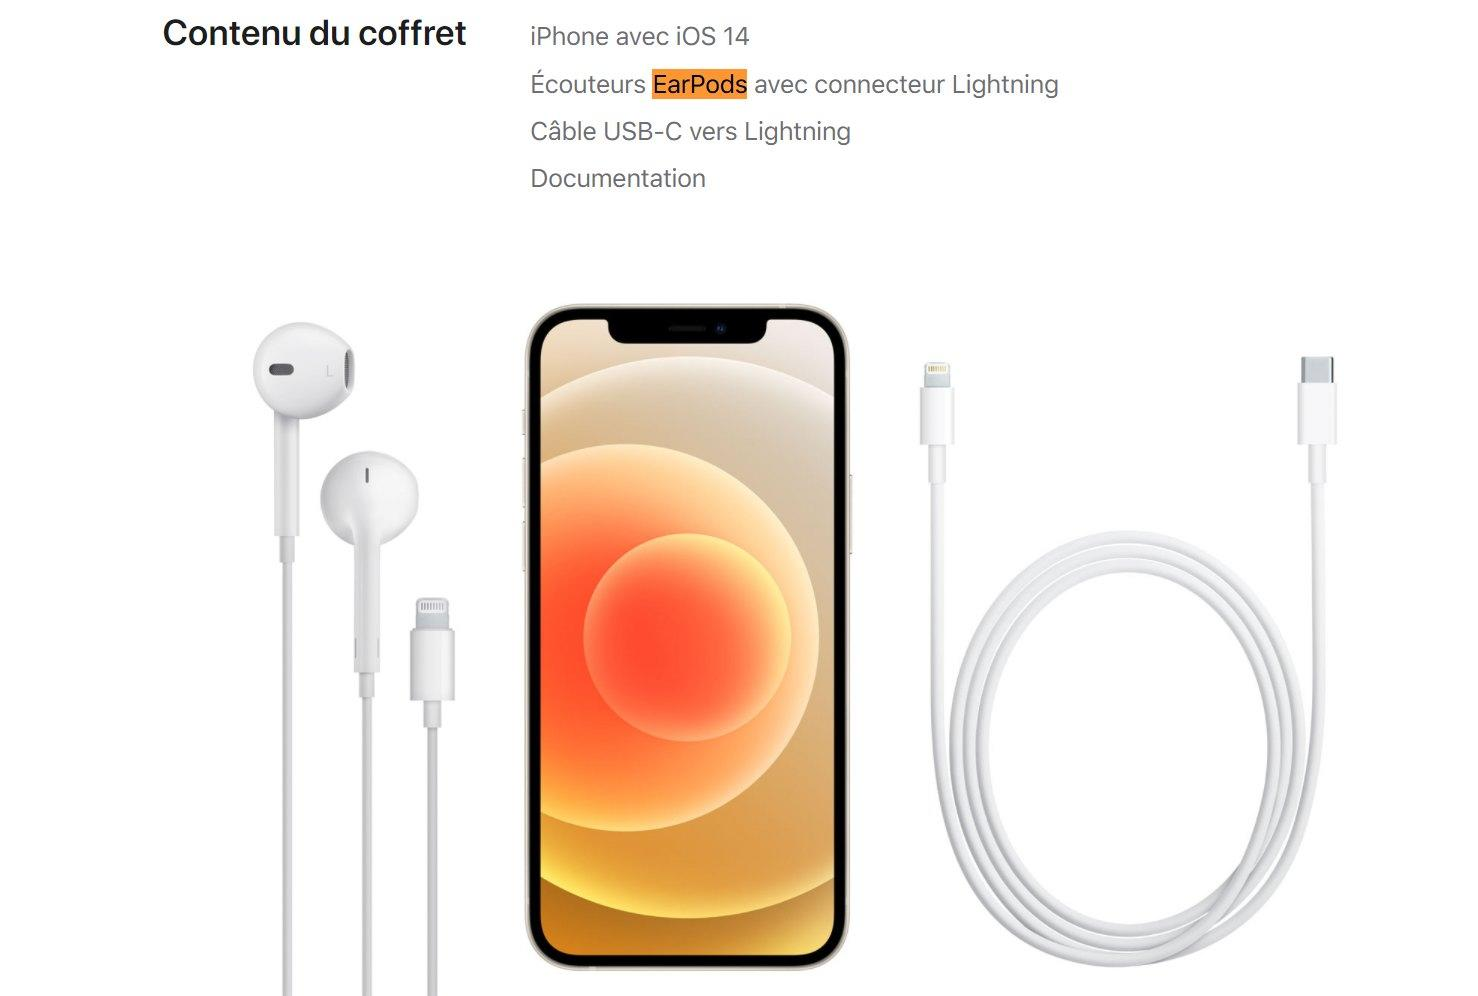 Apple's iPhone 12 comes with EarPods in France because of radiation laws | Engadget